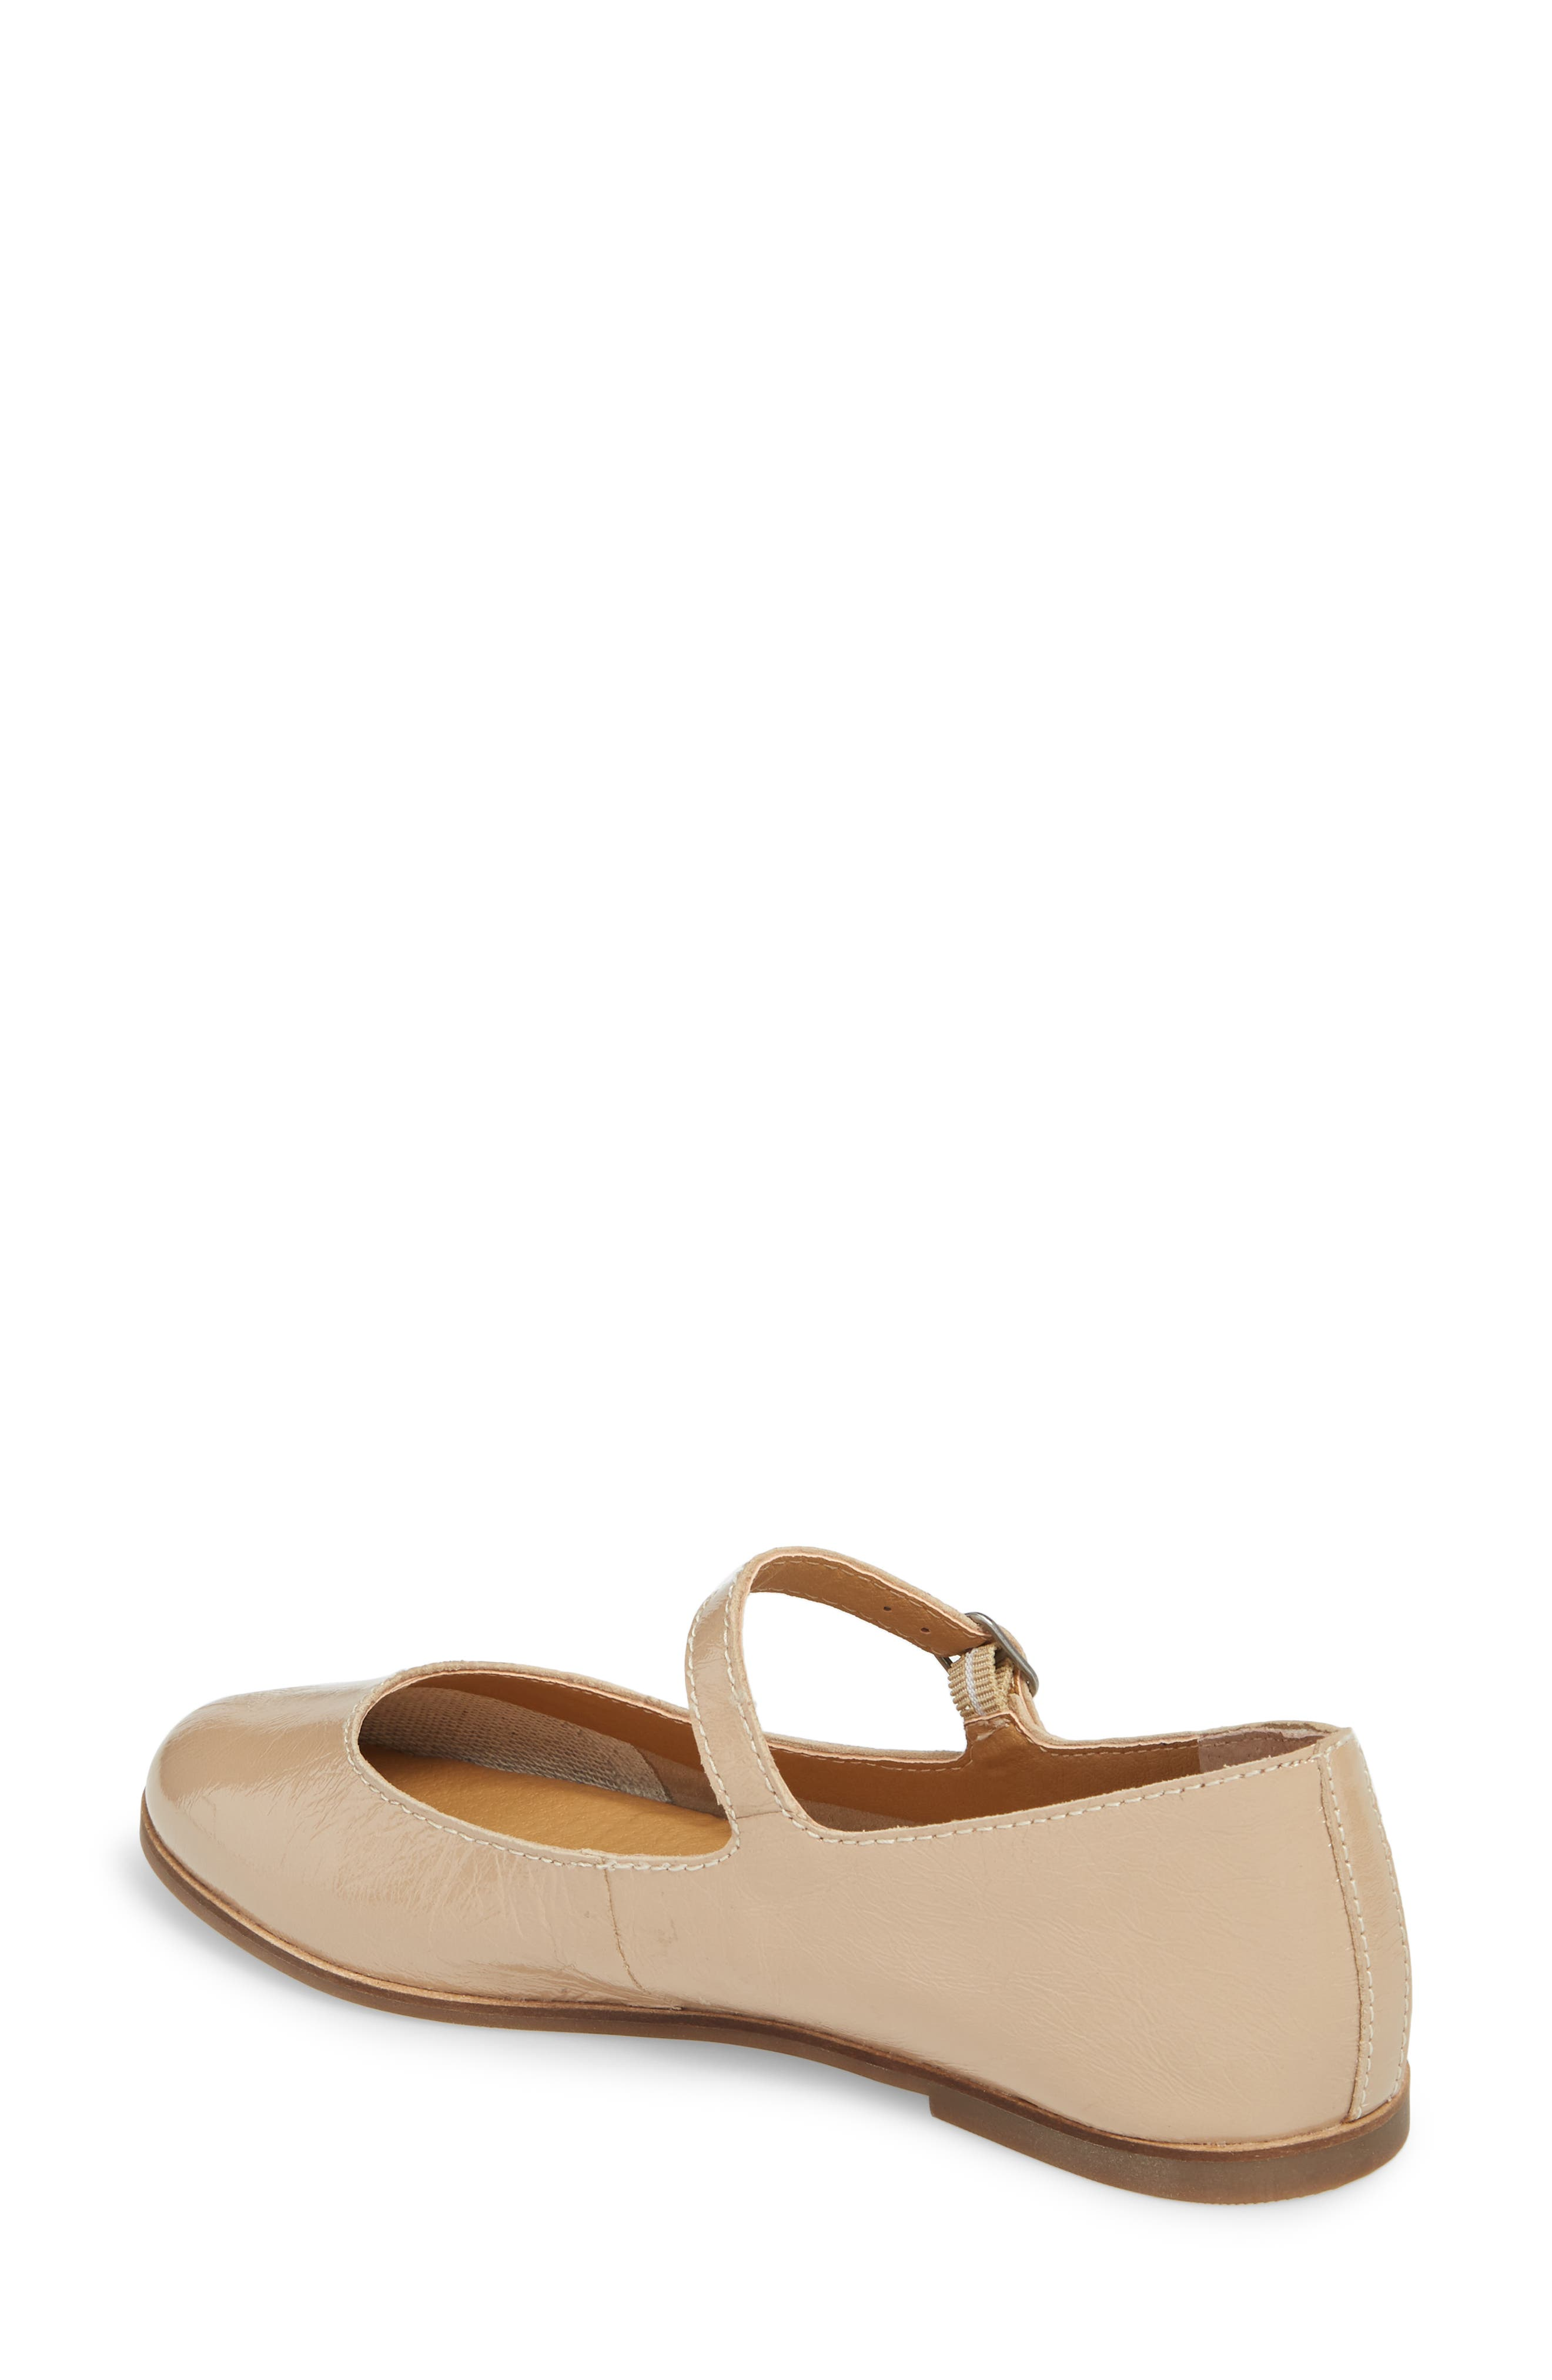 Ceentana Mary Jane Flat,                             Alternate thumbnail 2, color,                             Feather Leather